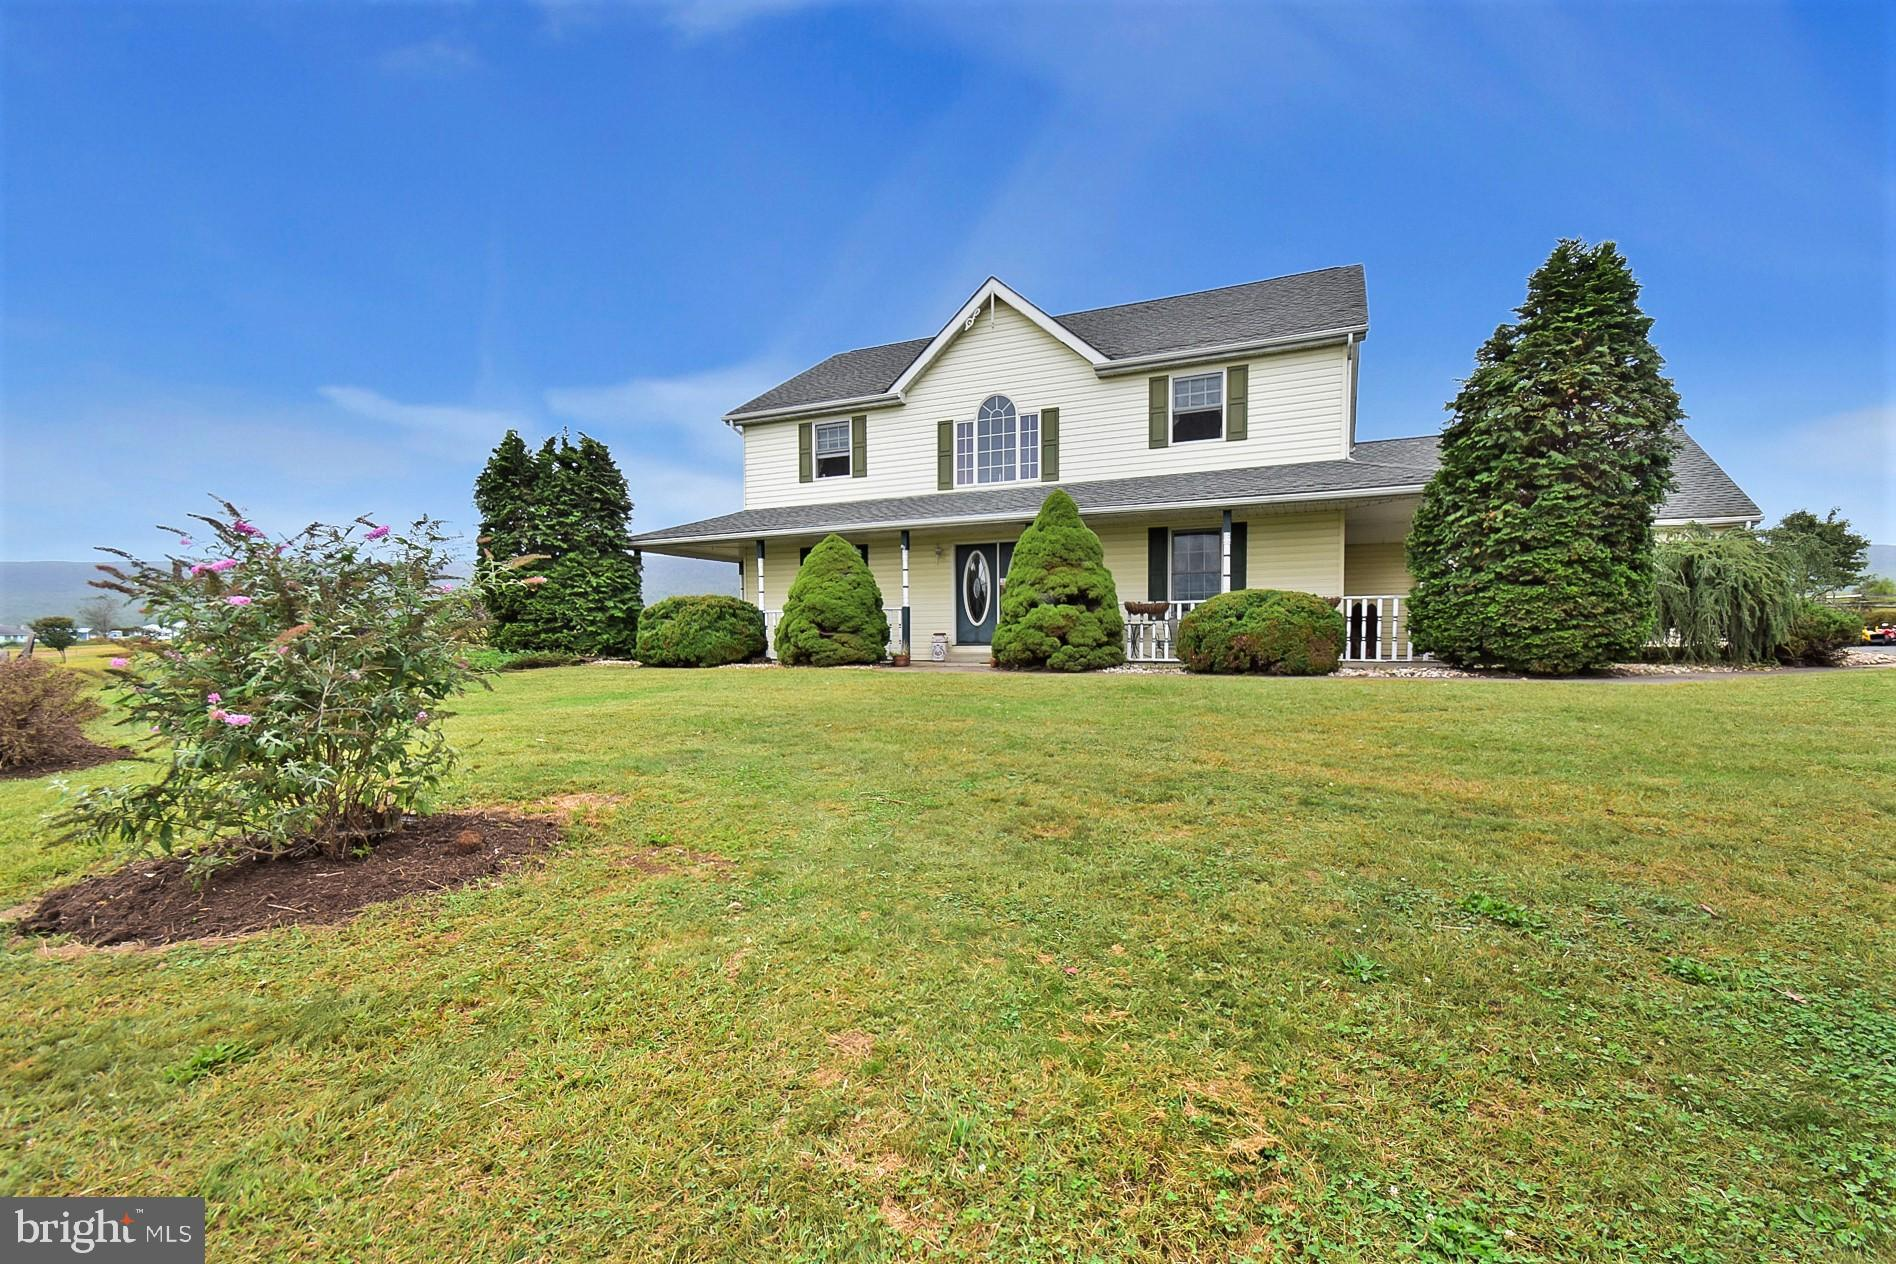 7445 BEHLER ROAD, NEW TRIPOLI, PA 18066